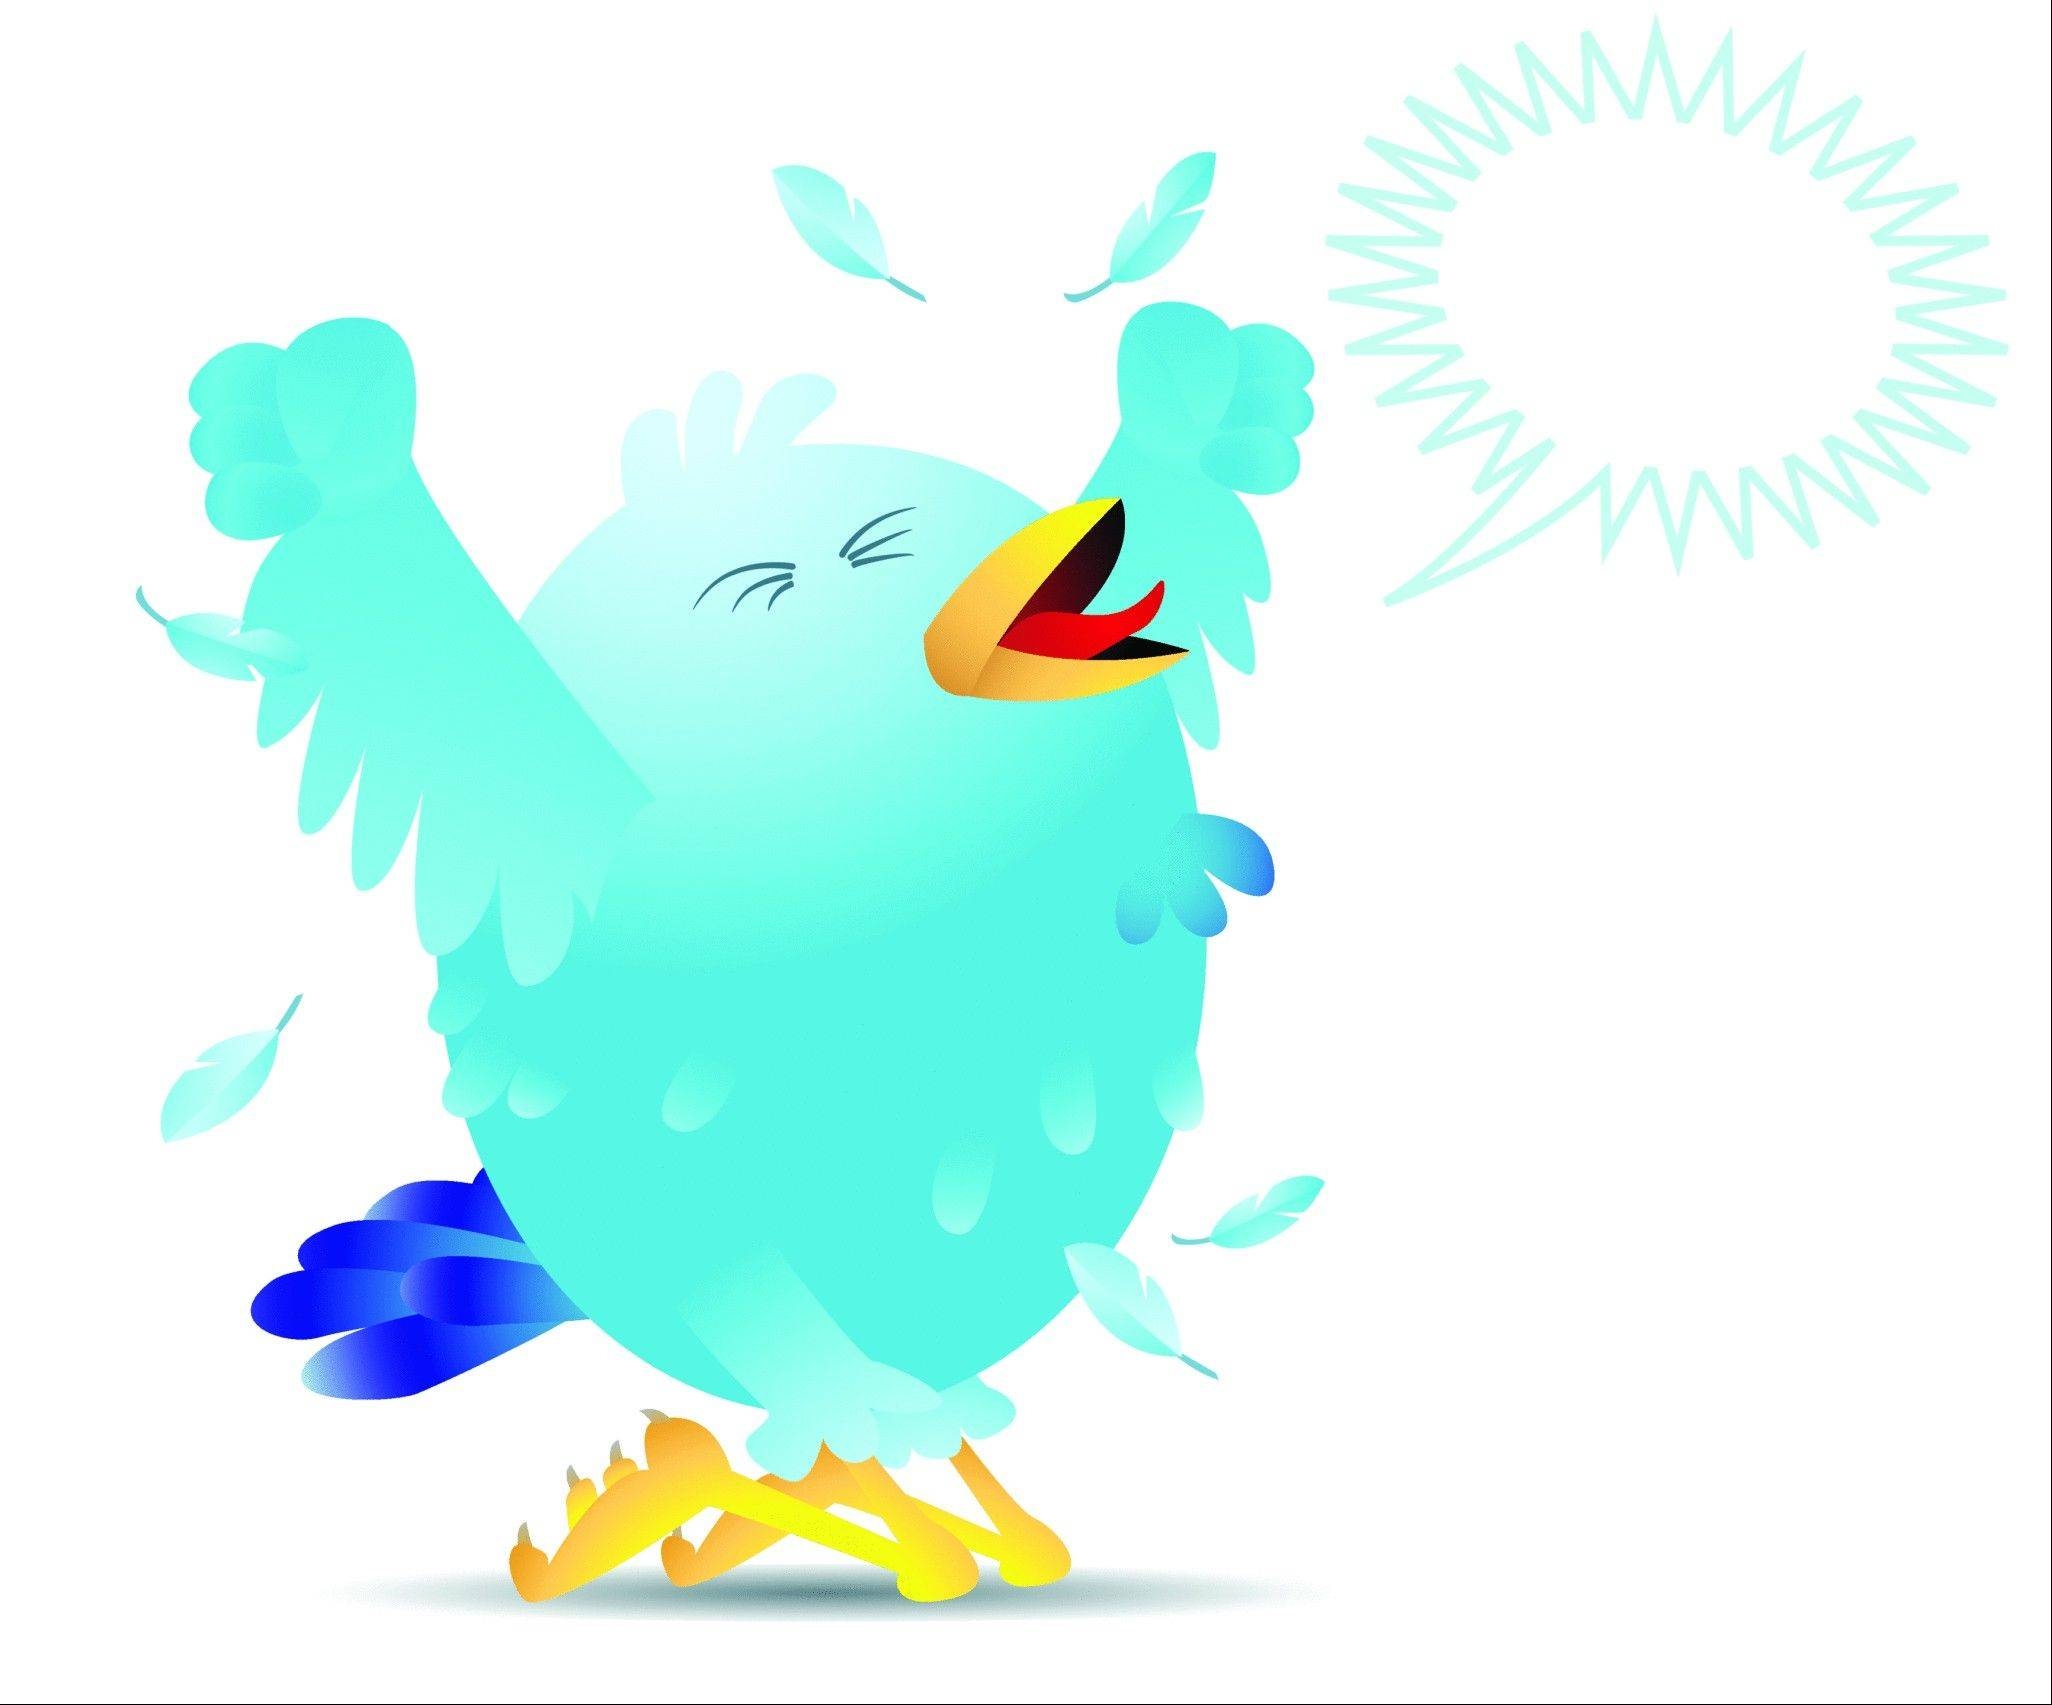 Twitter recently announced changes that basically make impossible to build or run an app that relies on Twitter in any significant way without approval from Twitter itself.